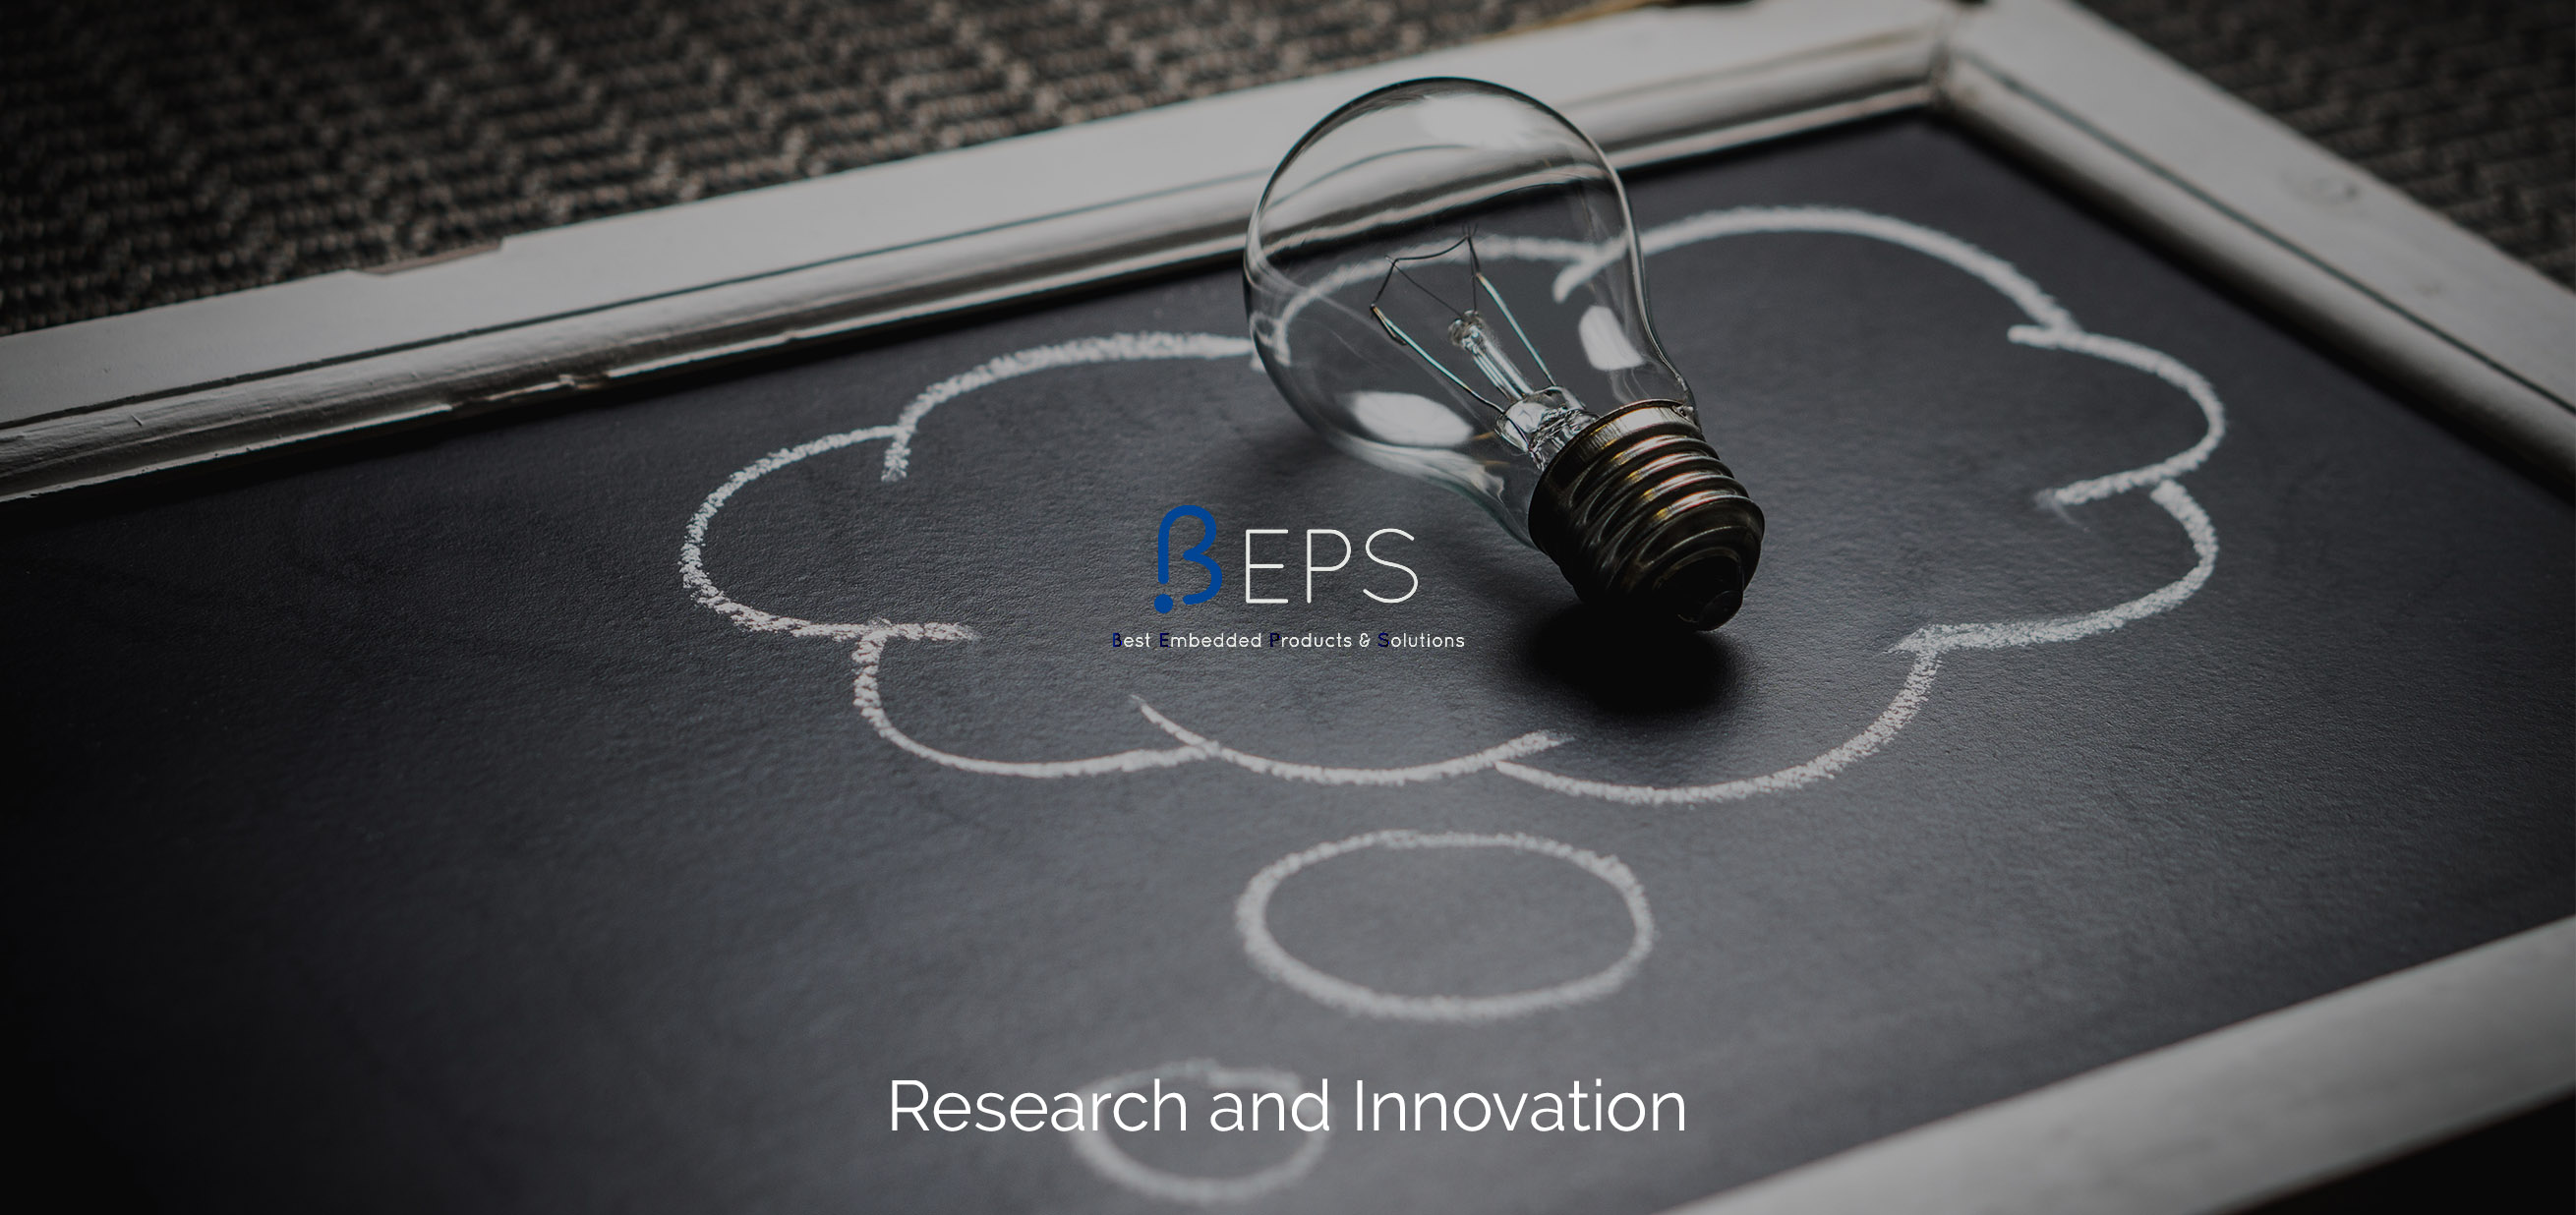 Beps Research and Innovation